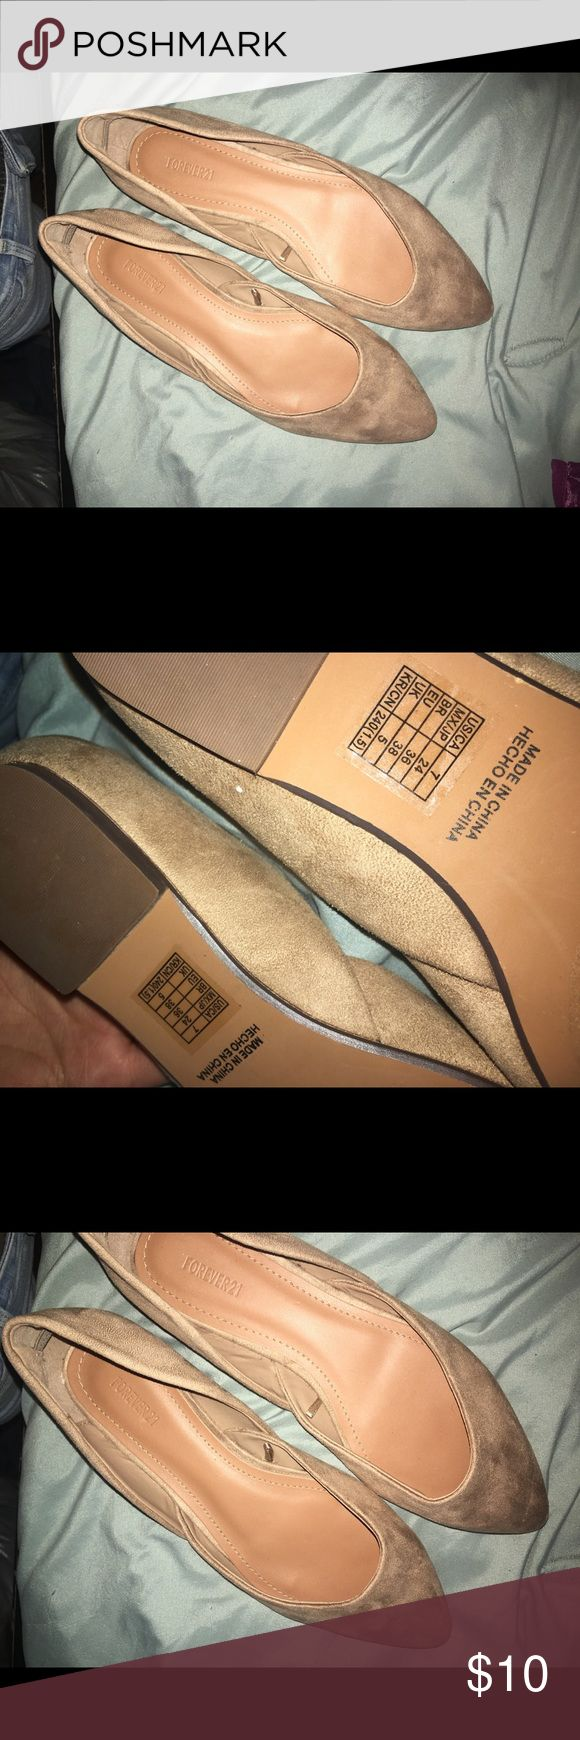 Flats | Suede material | beige Worn once size 7 | offers accepted | make a bundle ! Shoes Flats & Loafers